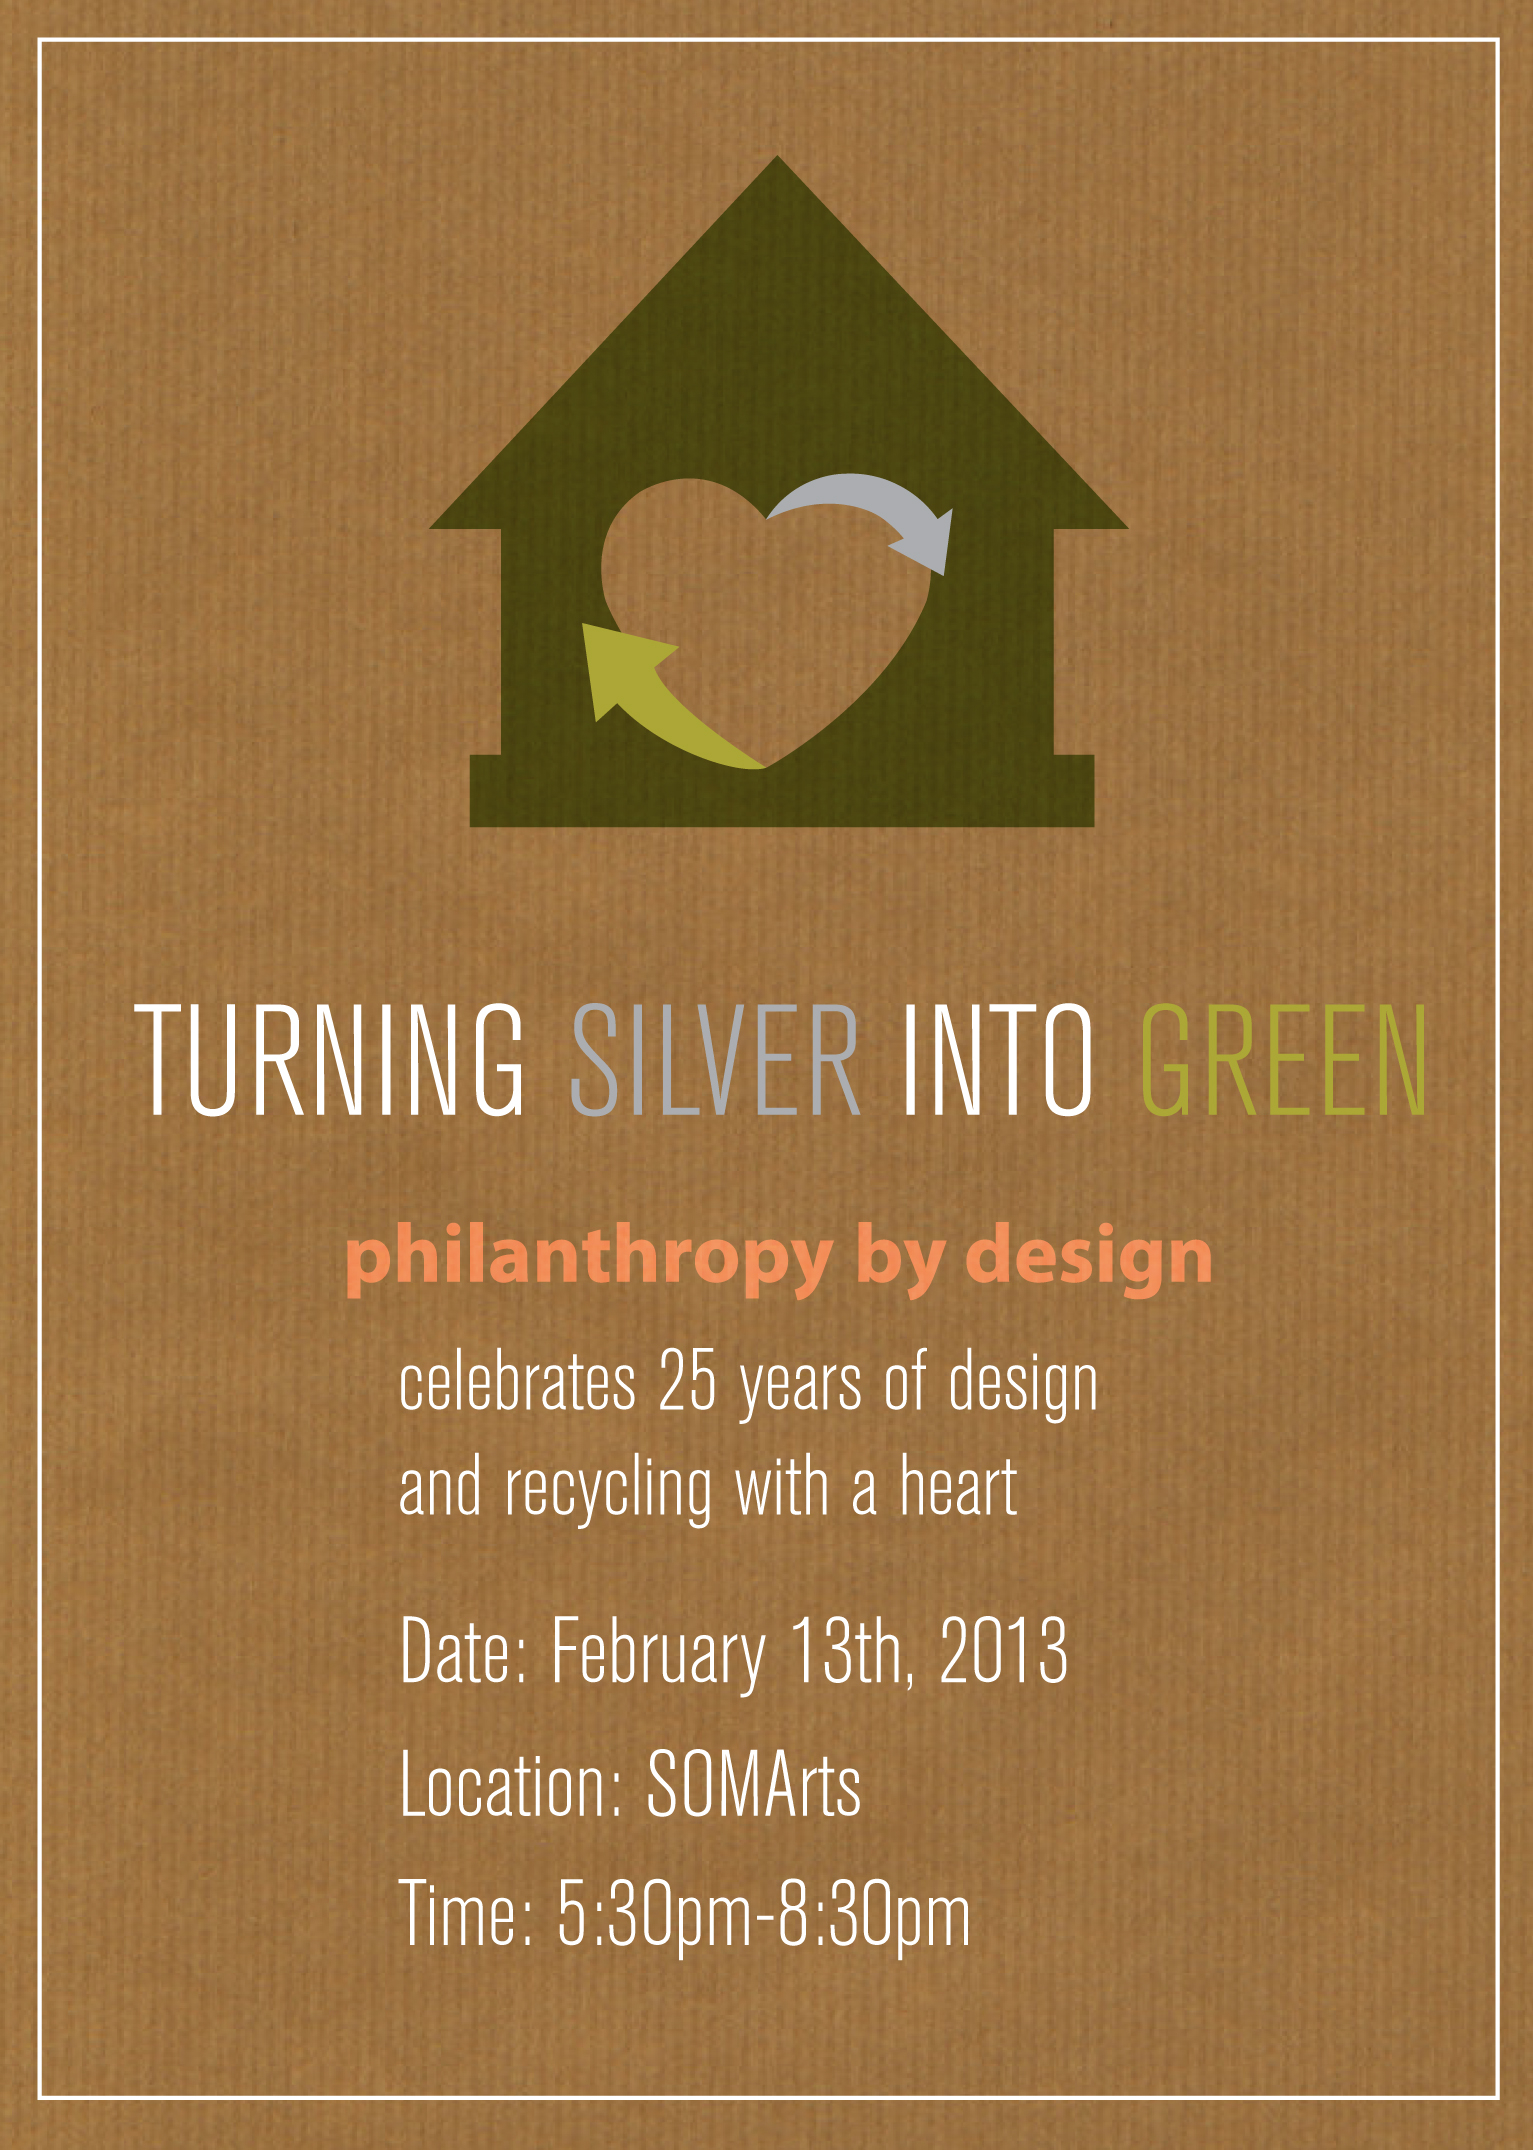 Dwell for Philanthropy by Design 25th Anniversary Event